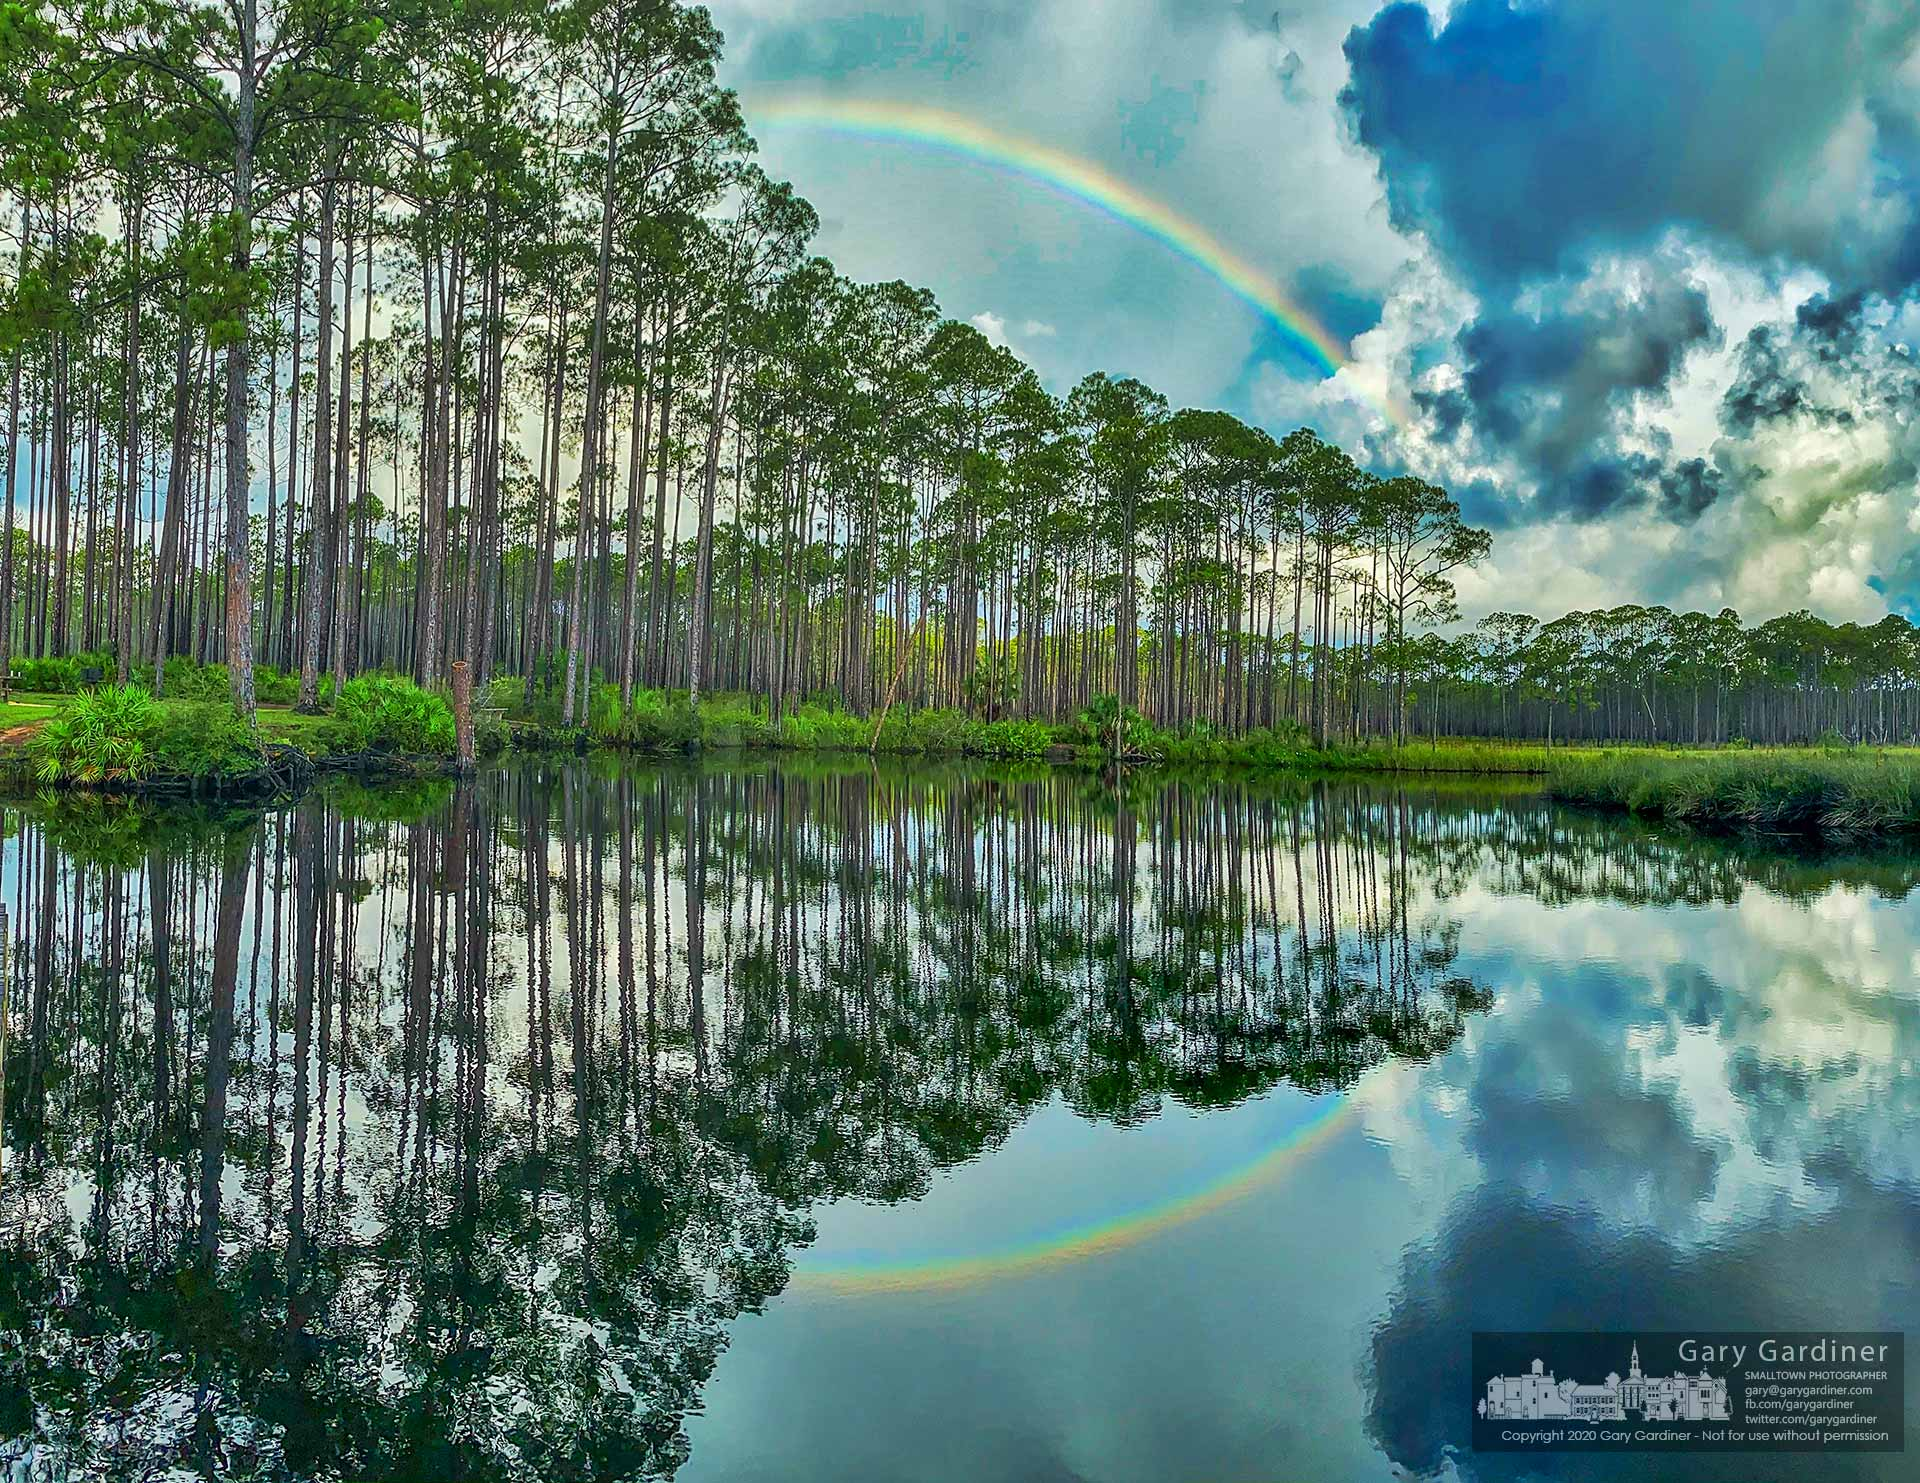 A rainbow settles across the sky at Cash Camp Bayou in Tate's Hell State Forest near Apalachicola, FL. My Final Photo for July 19, 2020.